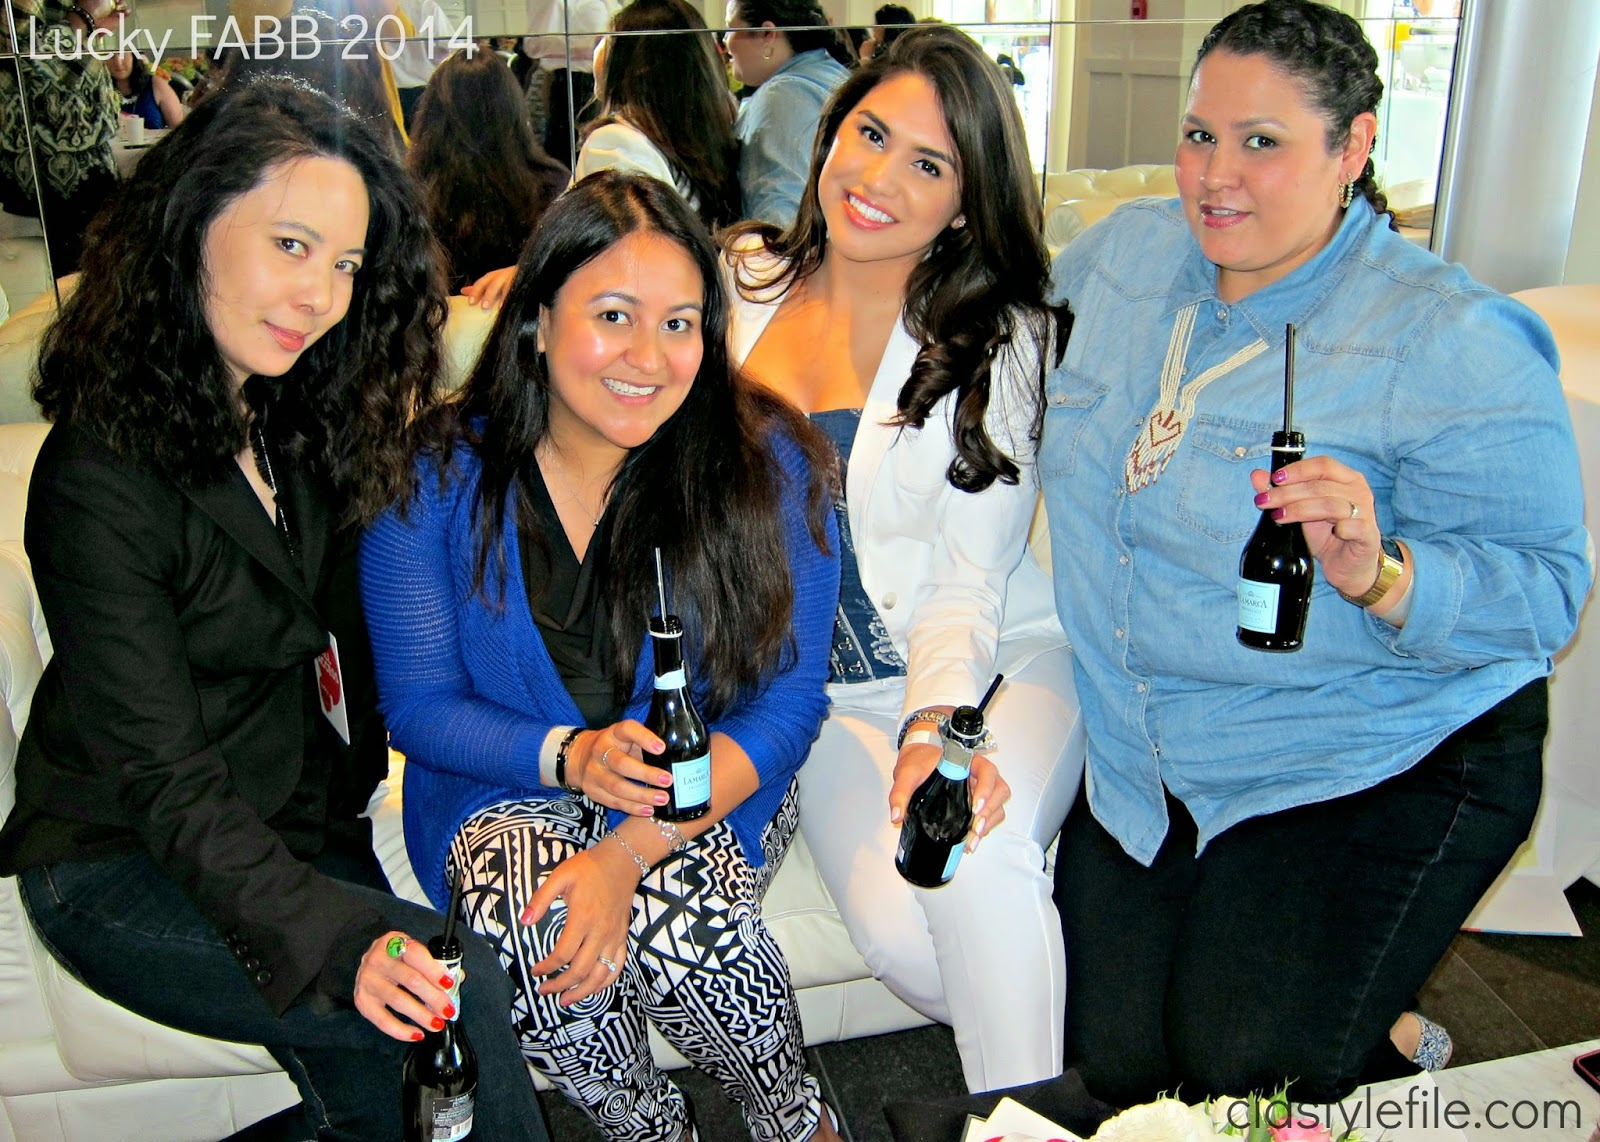 fashion blogges, latina bloggers, #luckyfabb, miss me jeans, lucky magazine, blogger conference, sls hotel, champagne, sparkling wine, #wecute